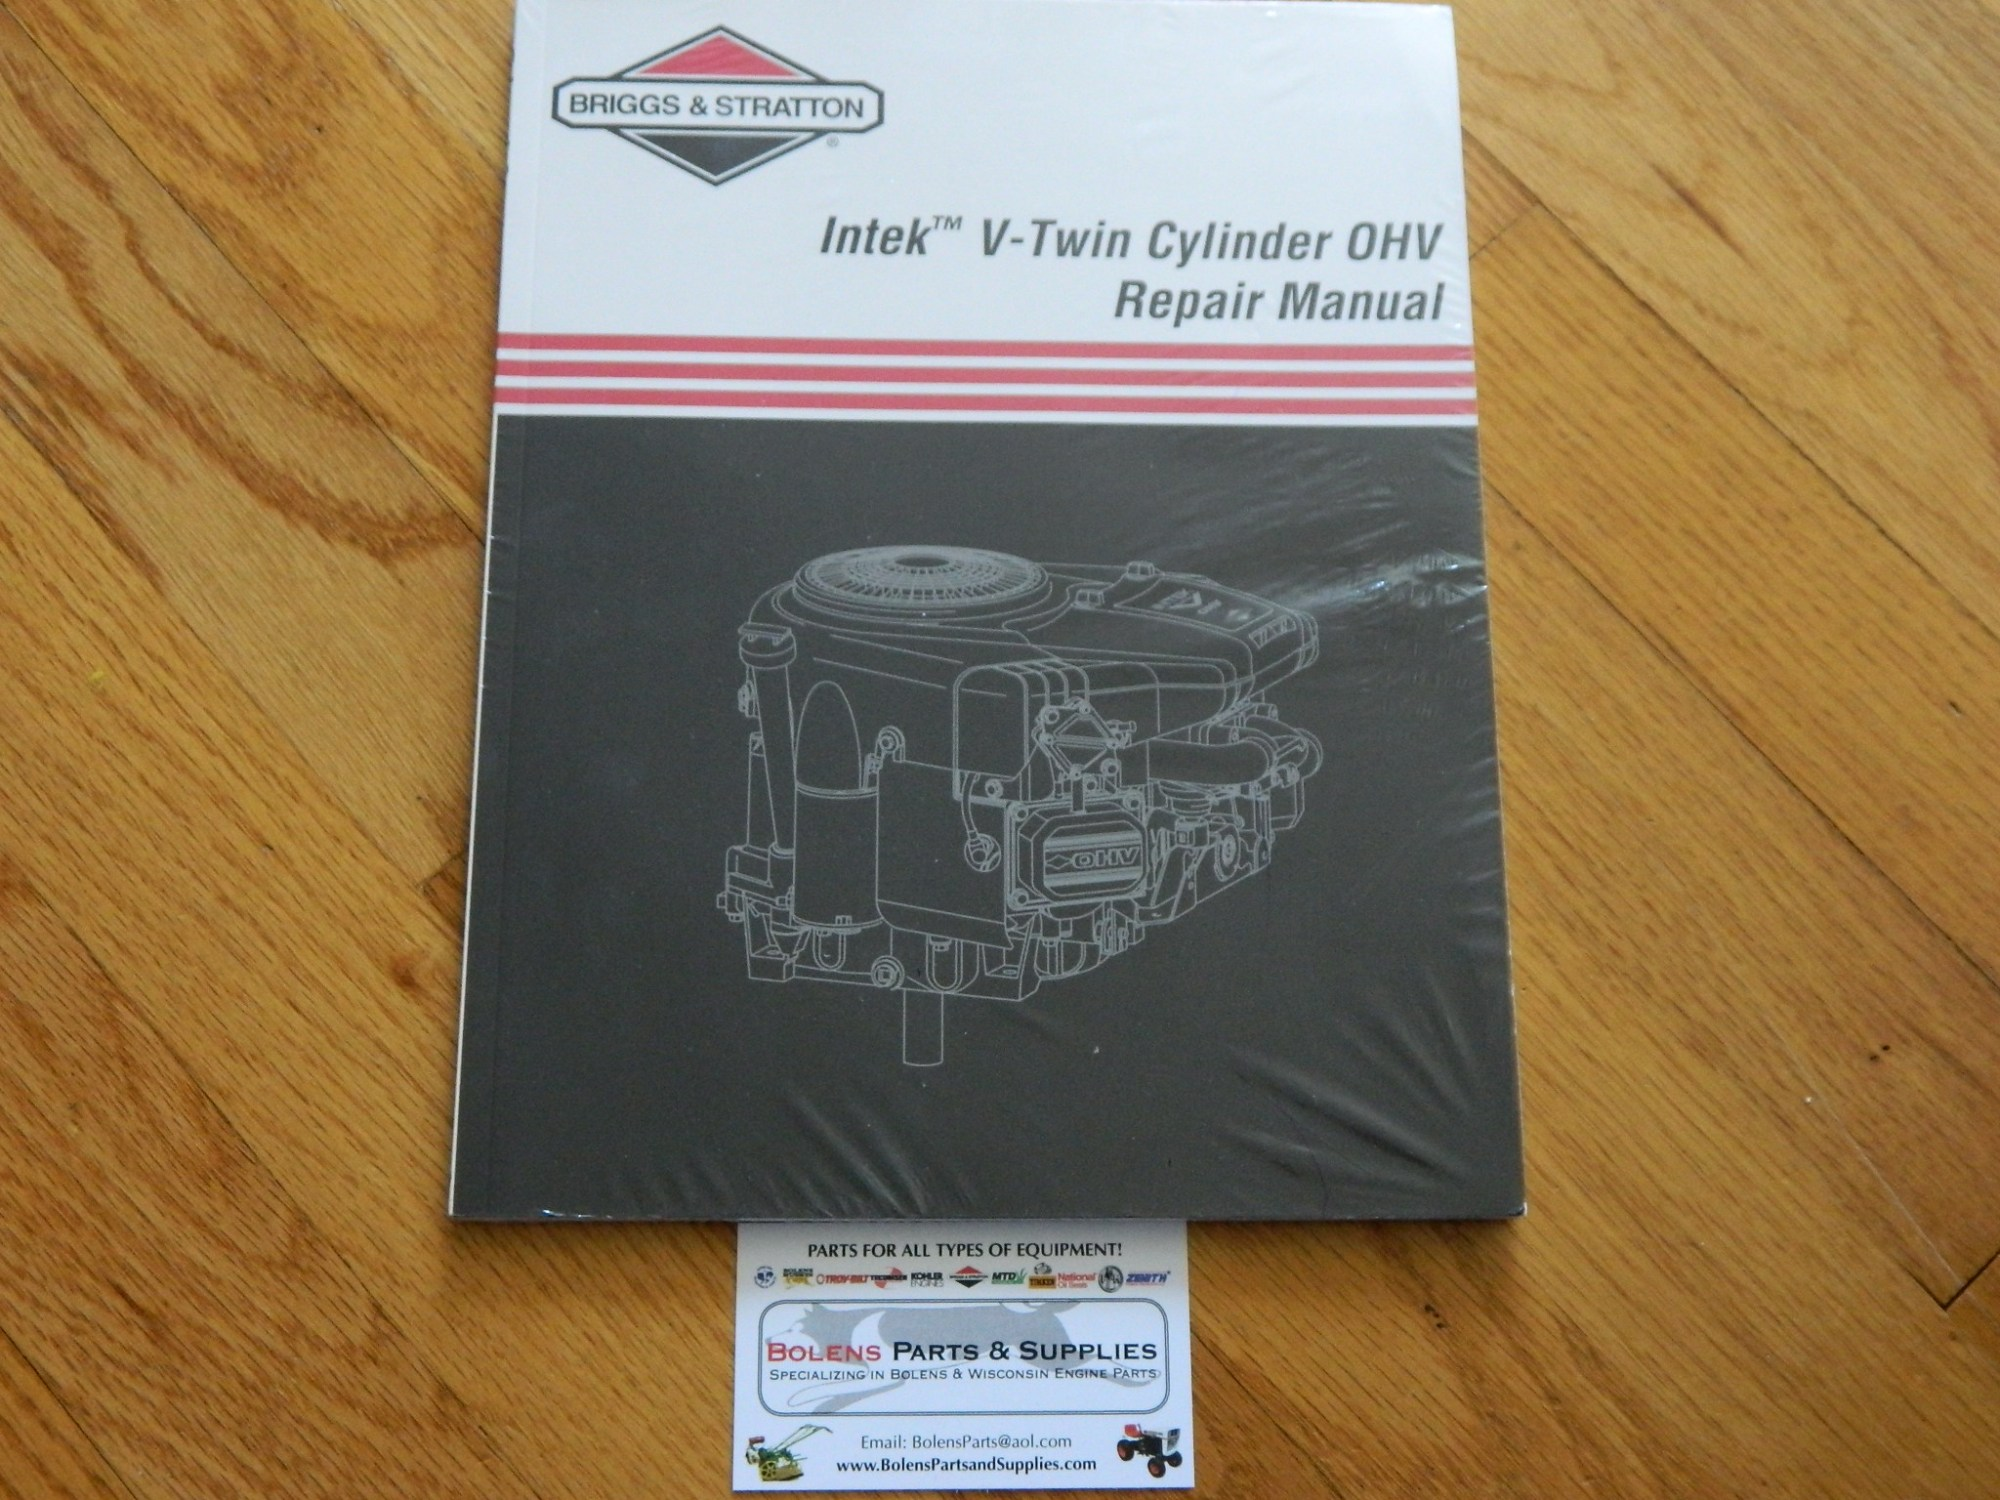 hight resolution of briggs stratton new briggs stratton intek v twin ohv repair manual genuine manual not reprint 273521